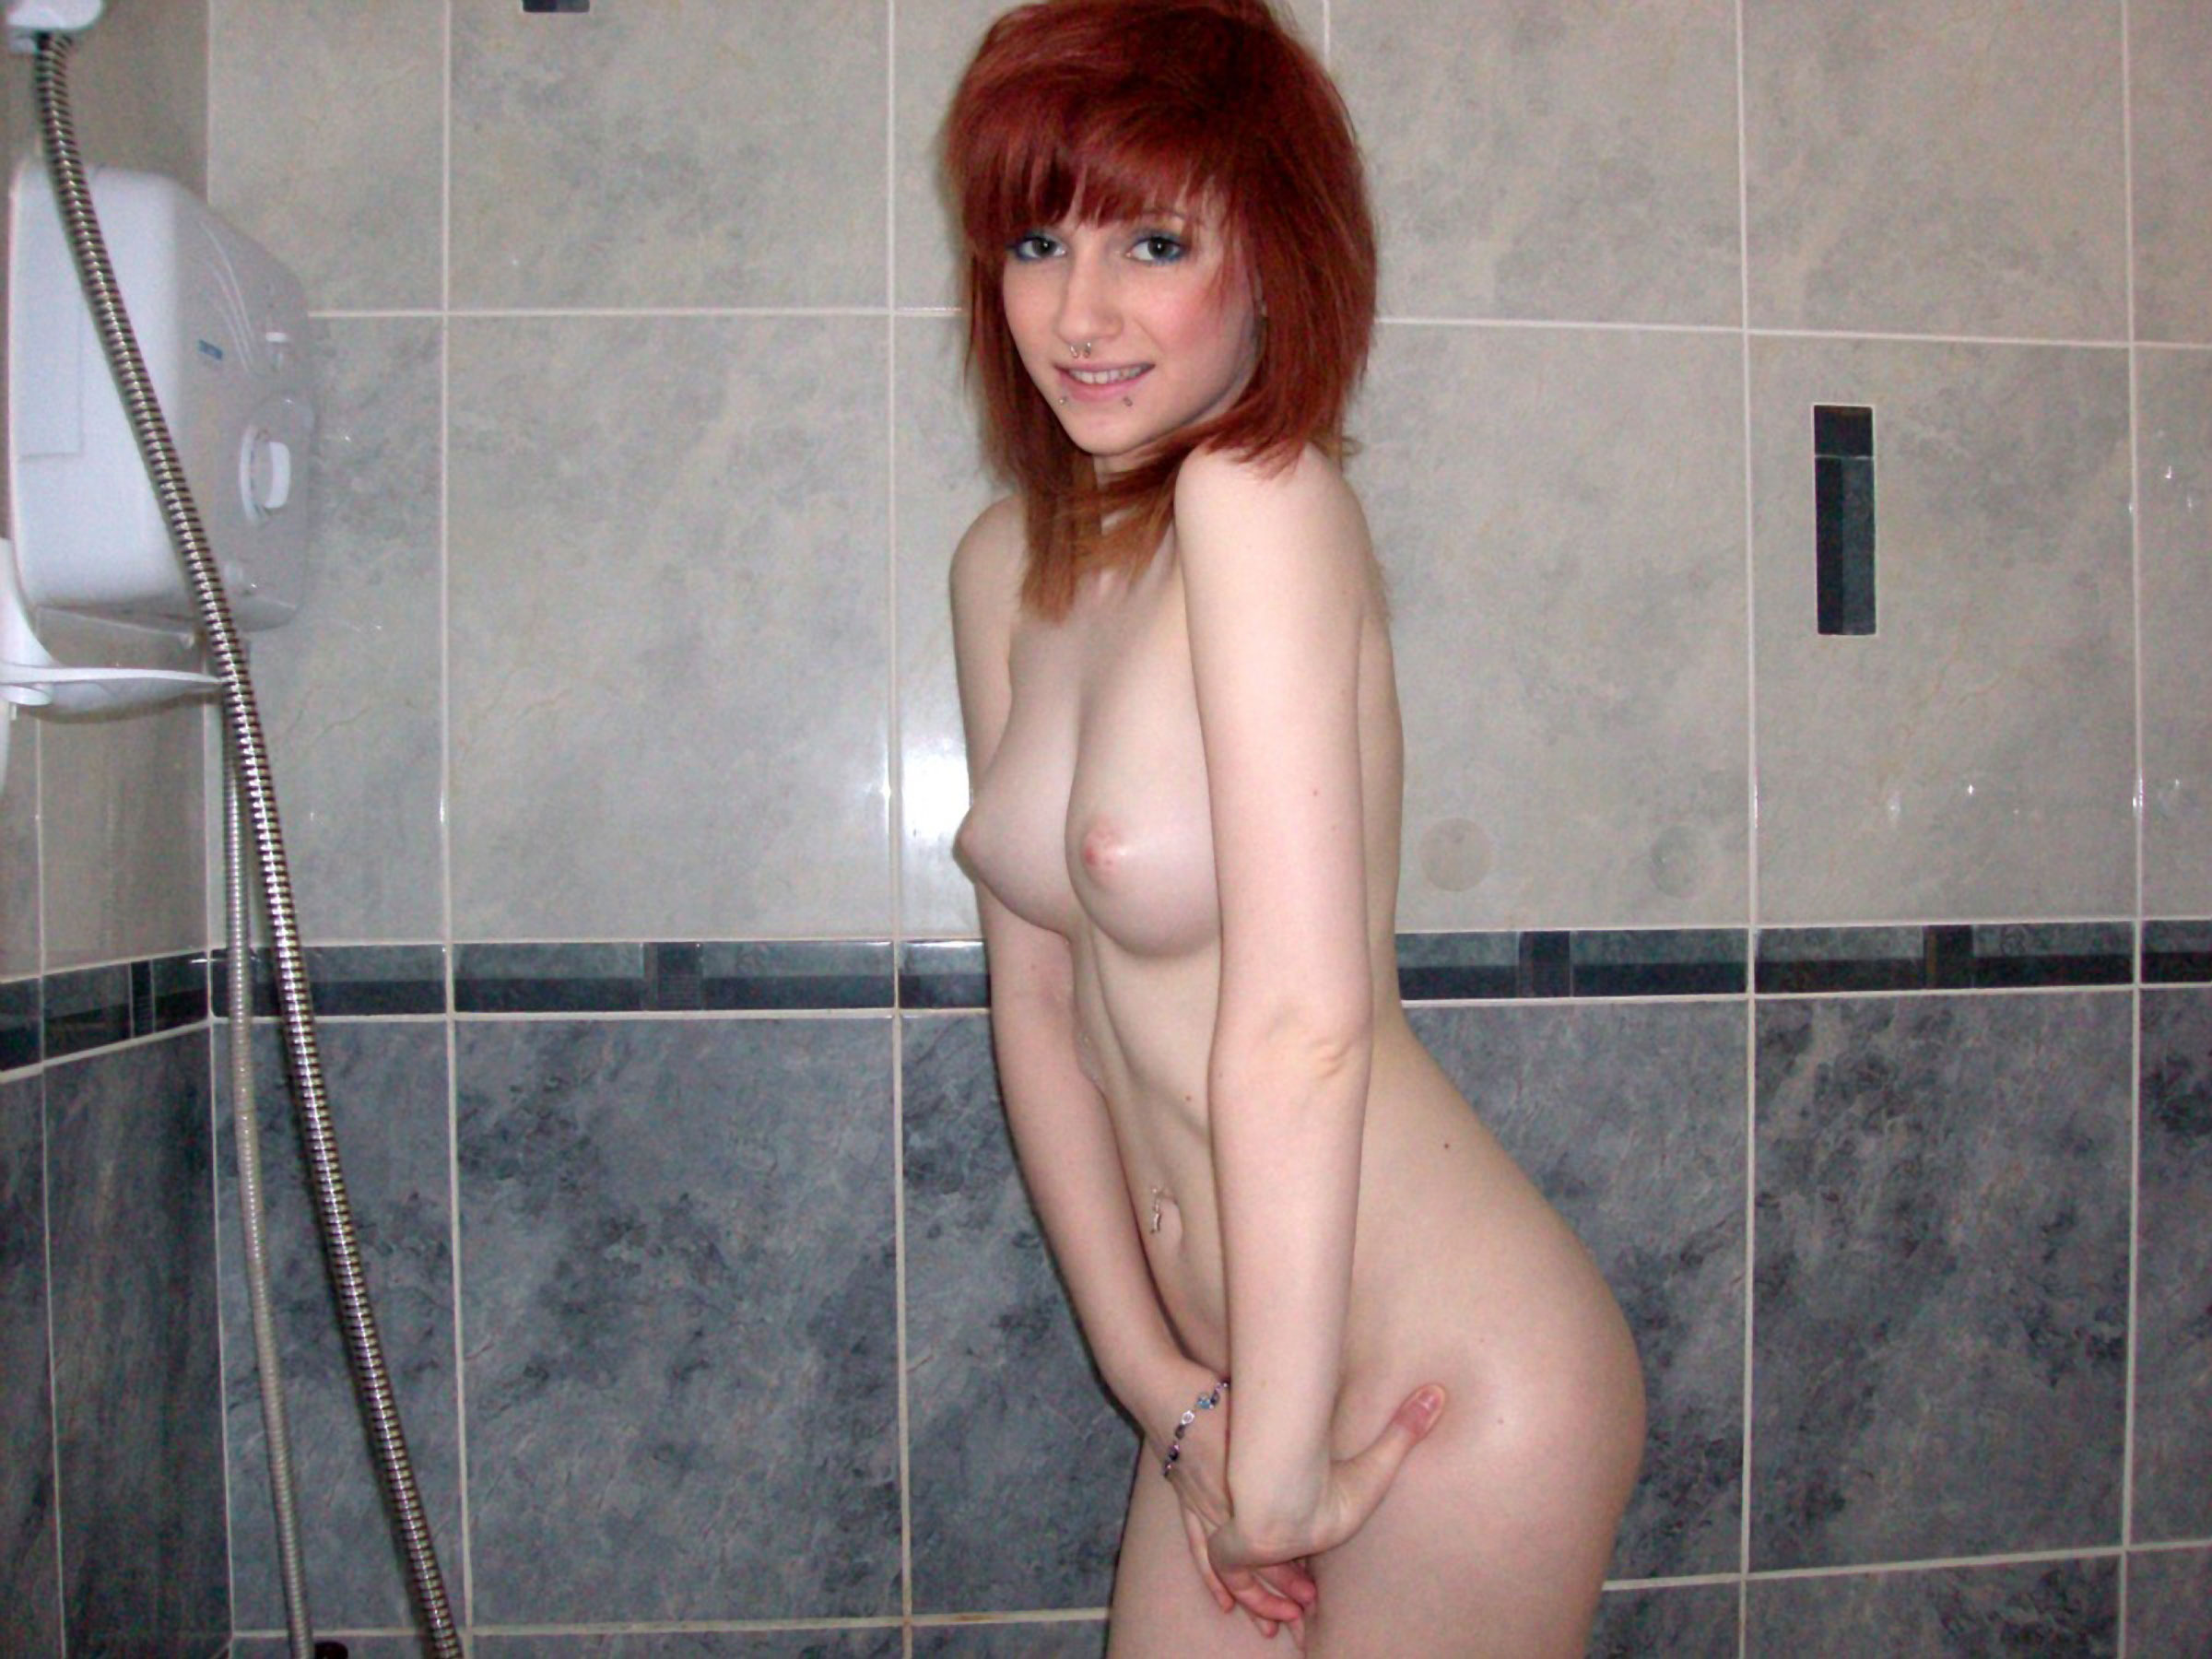 Perky female tits in shower